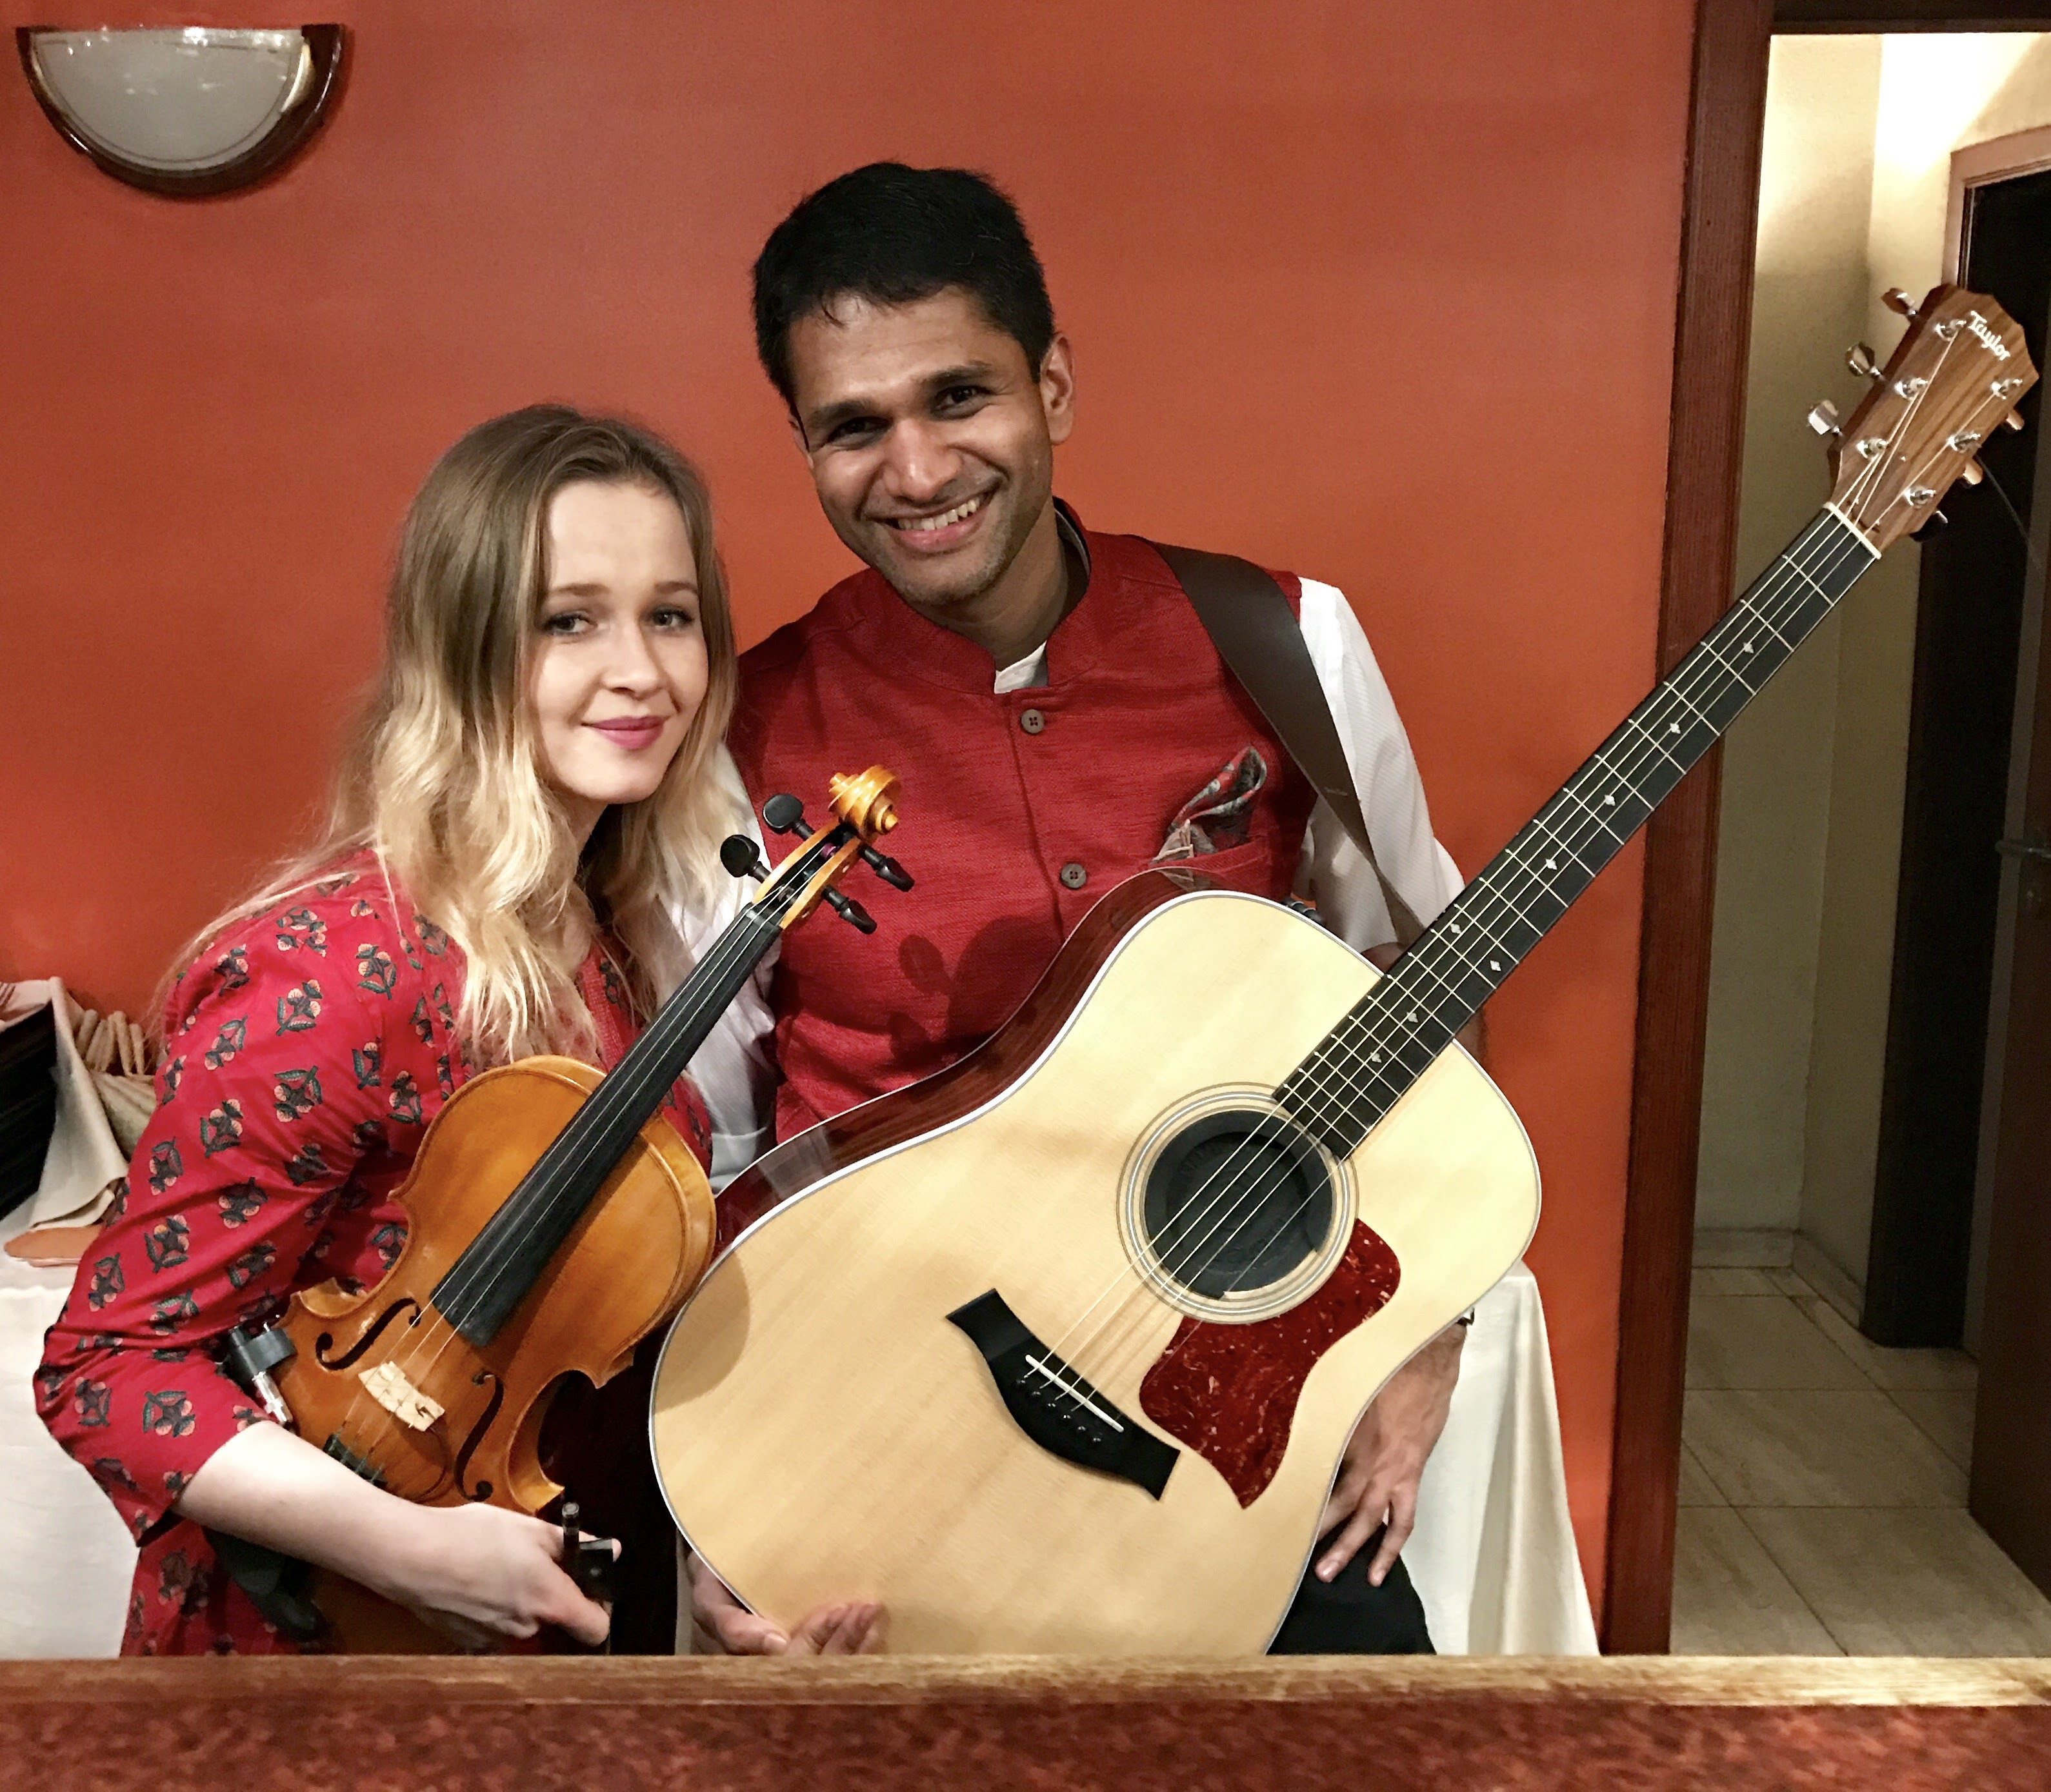 Sylwia Malachowska and I(Rahul Venkit) after an acoustic Bollywood gig in Brussels.